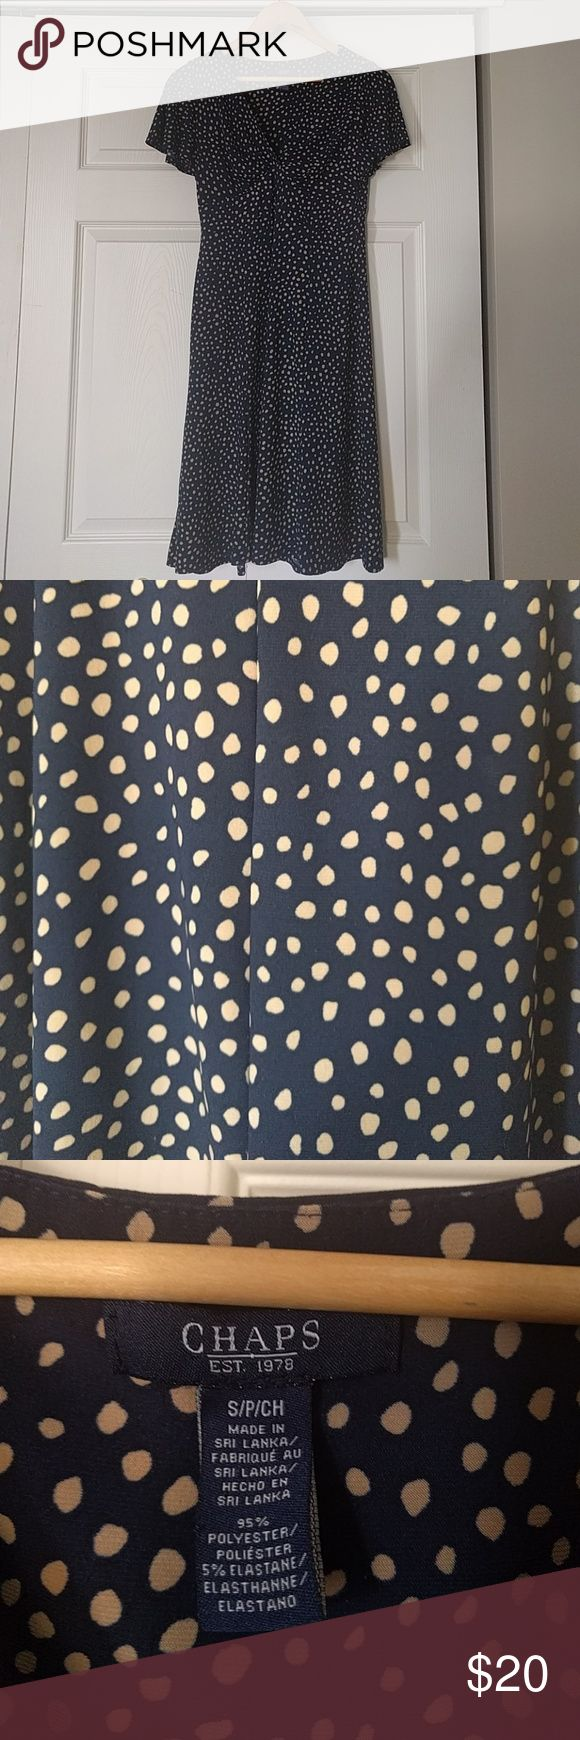 "Chaps Navy and Camel Polka Dot Fitted Tea Dress SP Gorgeous navy blue and camel polka dot dress.  Fitted and very flattering.  Chaps.  Size Petite Small.  Hits just below my knee and im 5' 2""  Excellent used condition.  Smoke free home  🚫 Modelling photos as selling because item doesn't suit me. Chaps Dresses Midi"